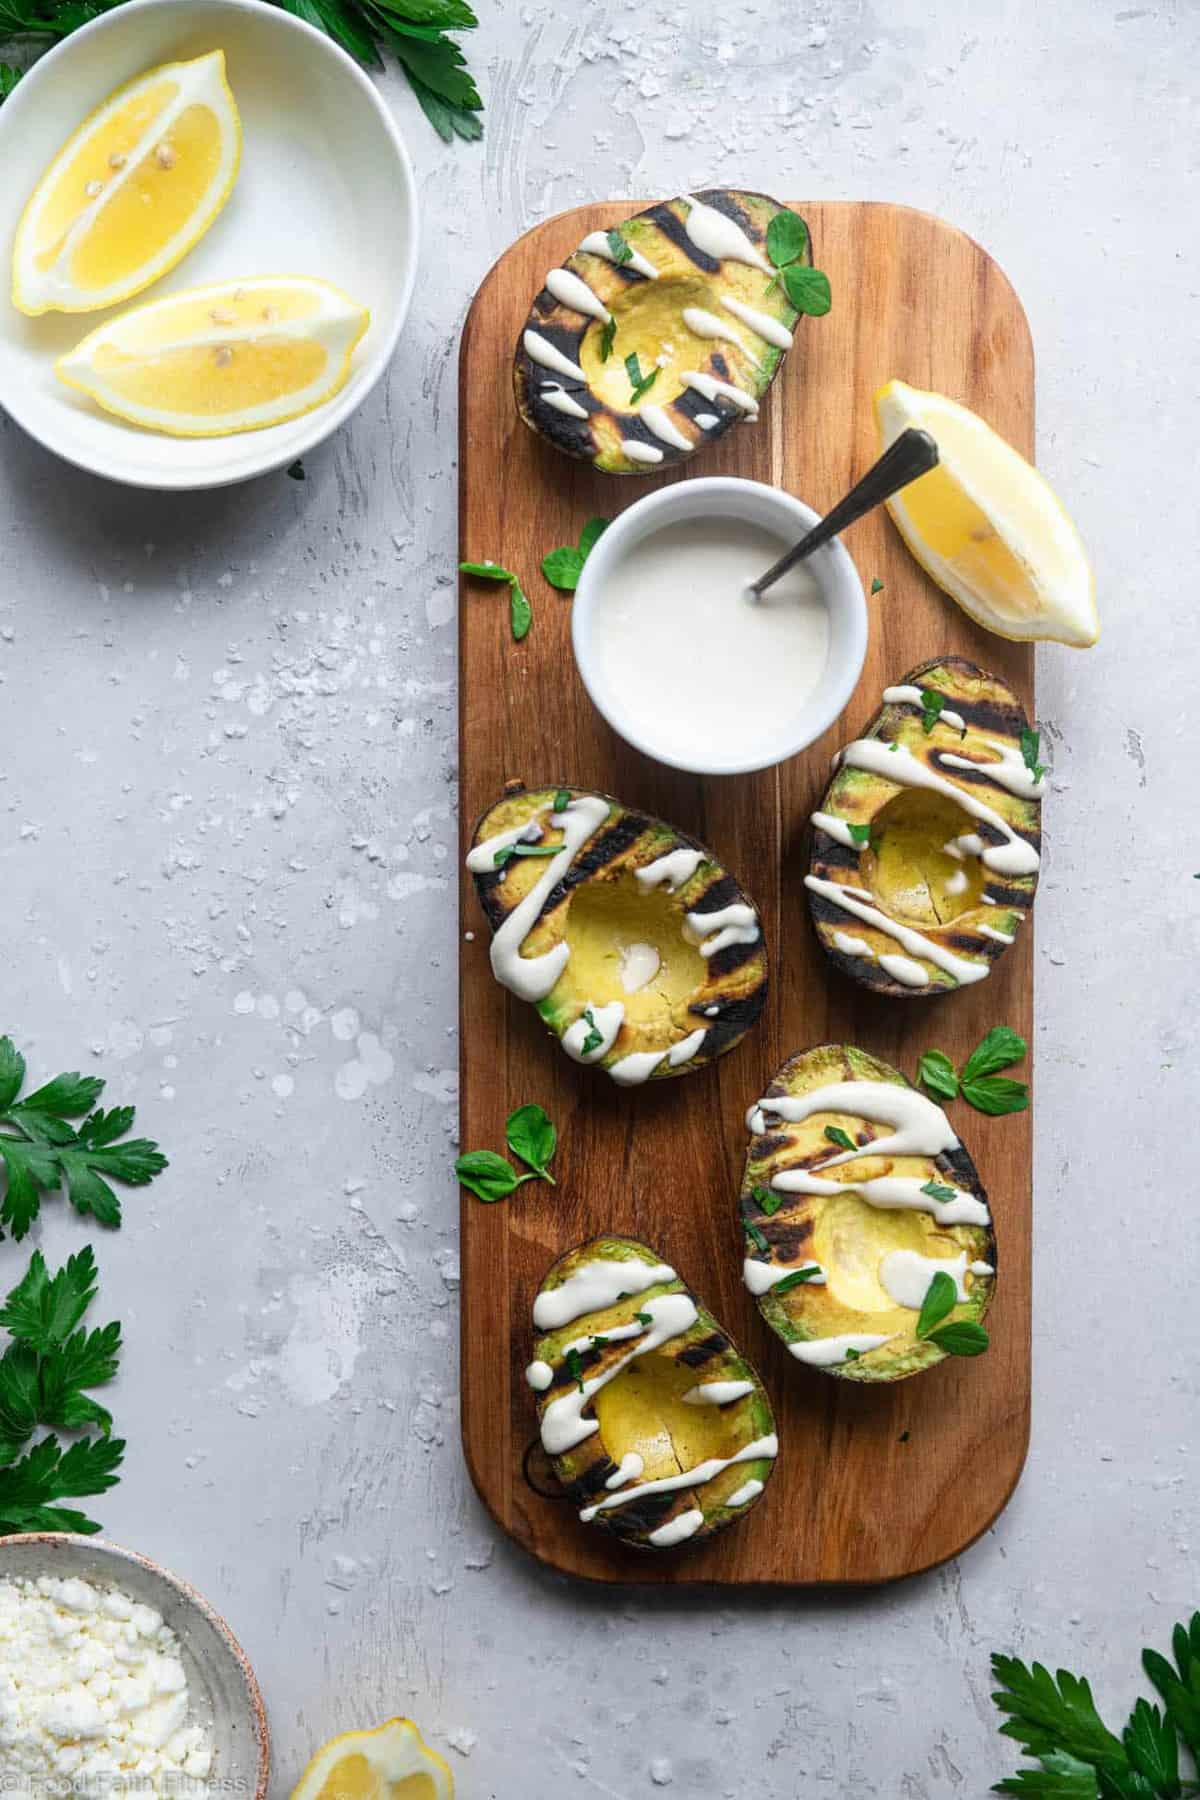 Grilled Avocado with Feta Tahini Sauce - These smoky and creamy grilled avocados are drizzled with a sweet and tangy feta and tahini sauce for an easy summer dinner that's healthy , keto, low carb and delicious! | #Foodfaithfitness | #Glutenfree #healthy #lowcarb #keto #grilling